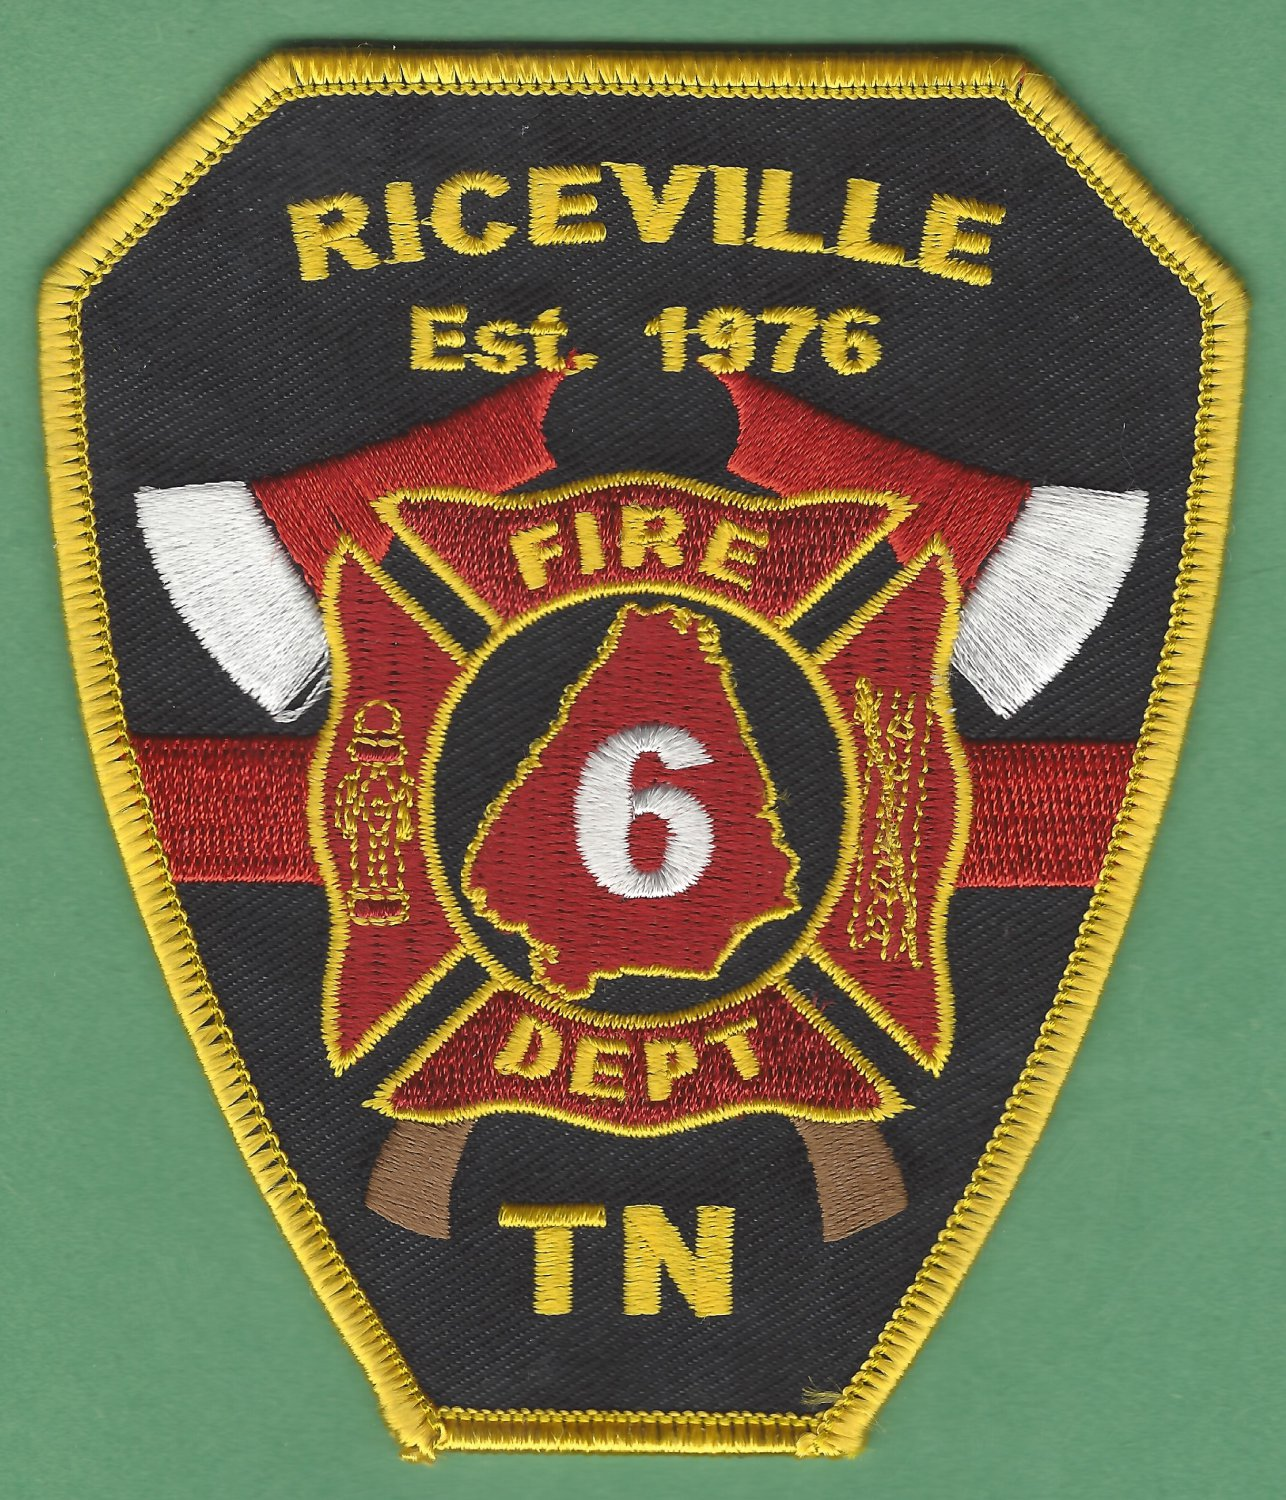 RICEVILLE TENNESSEE FIRE RESCUE PATCH